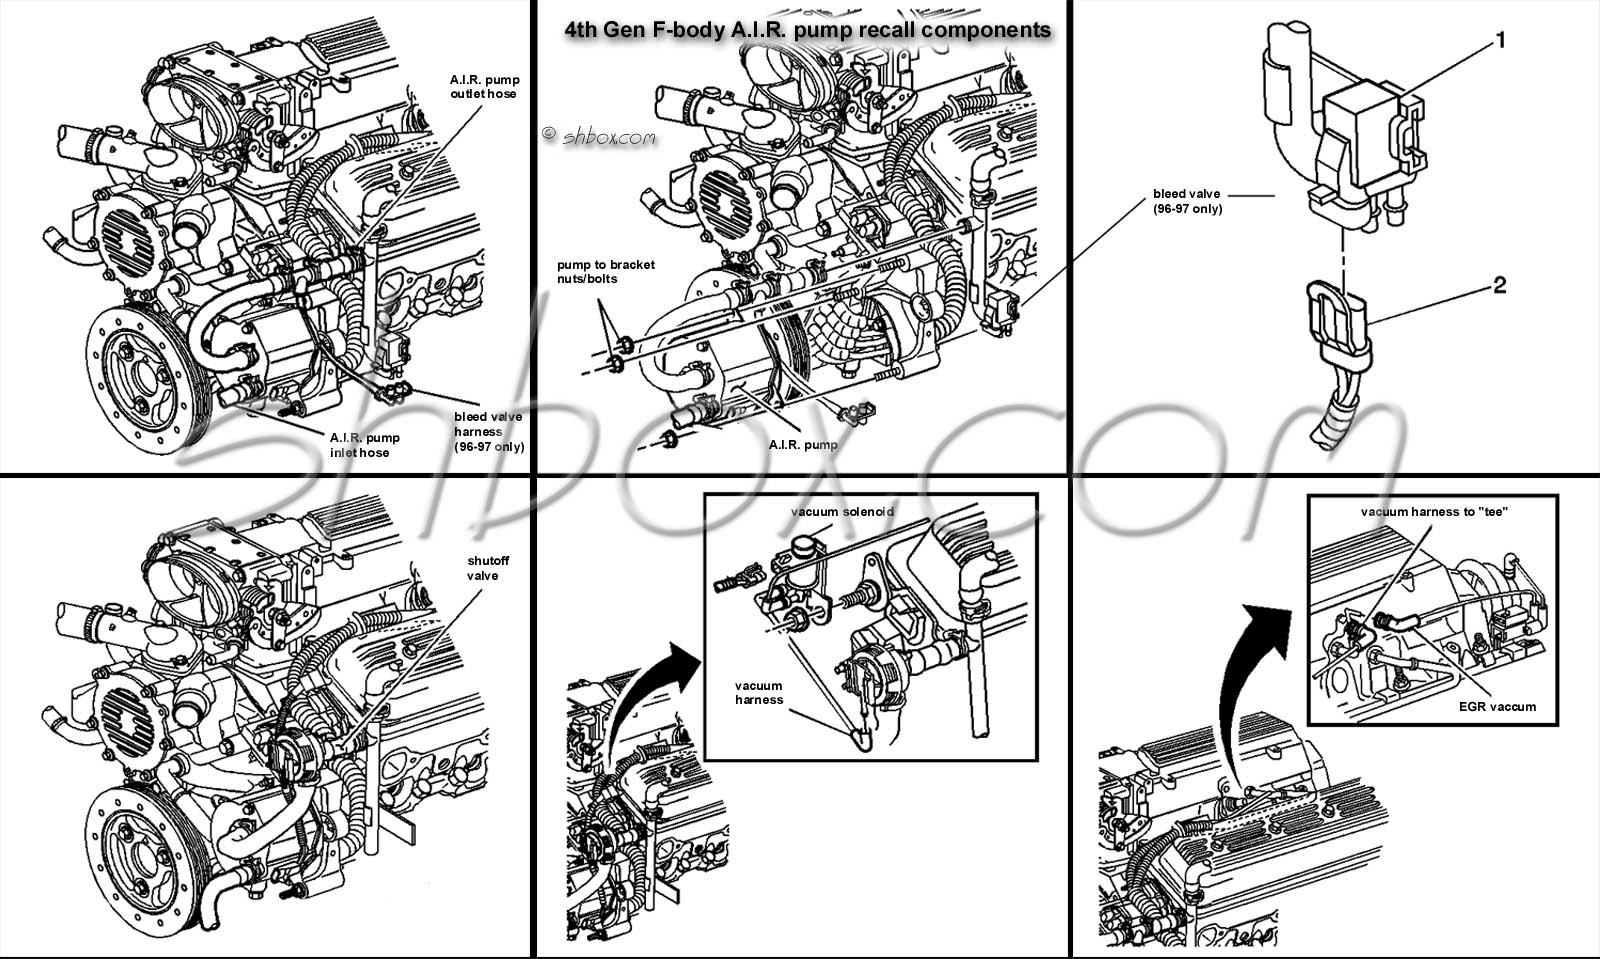 96 Camaro Engine Diagram Wiring Schematics 1967 Convertible Schematic 4th Gen Lt1 F Body Tech Aids Drawings Exploded Views 1996 Sell